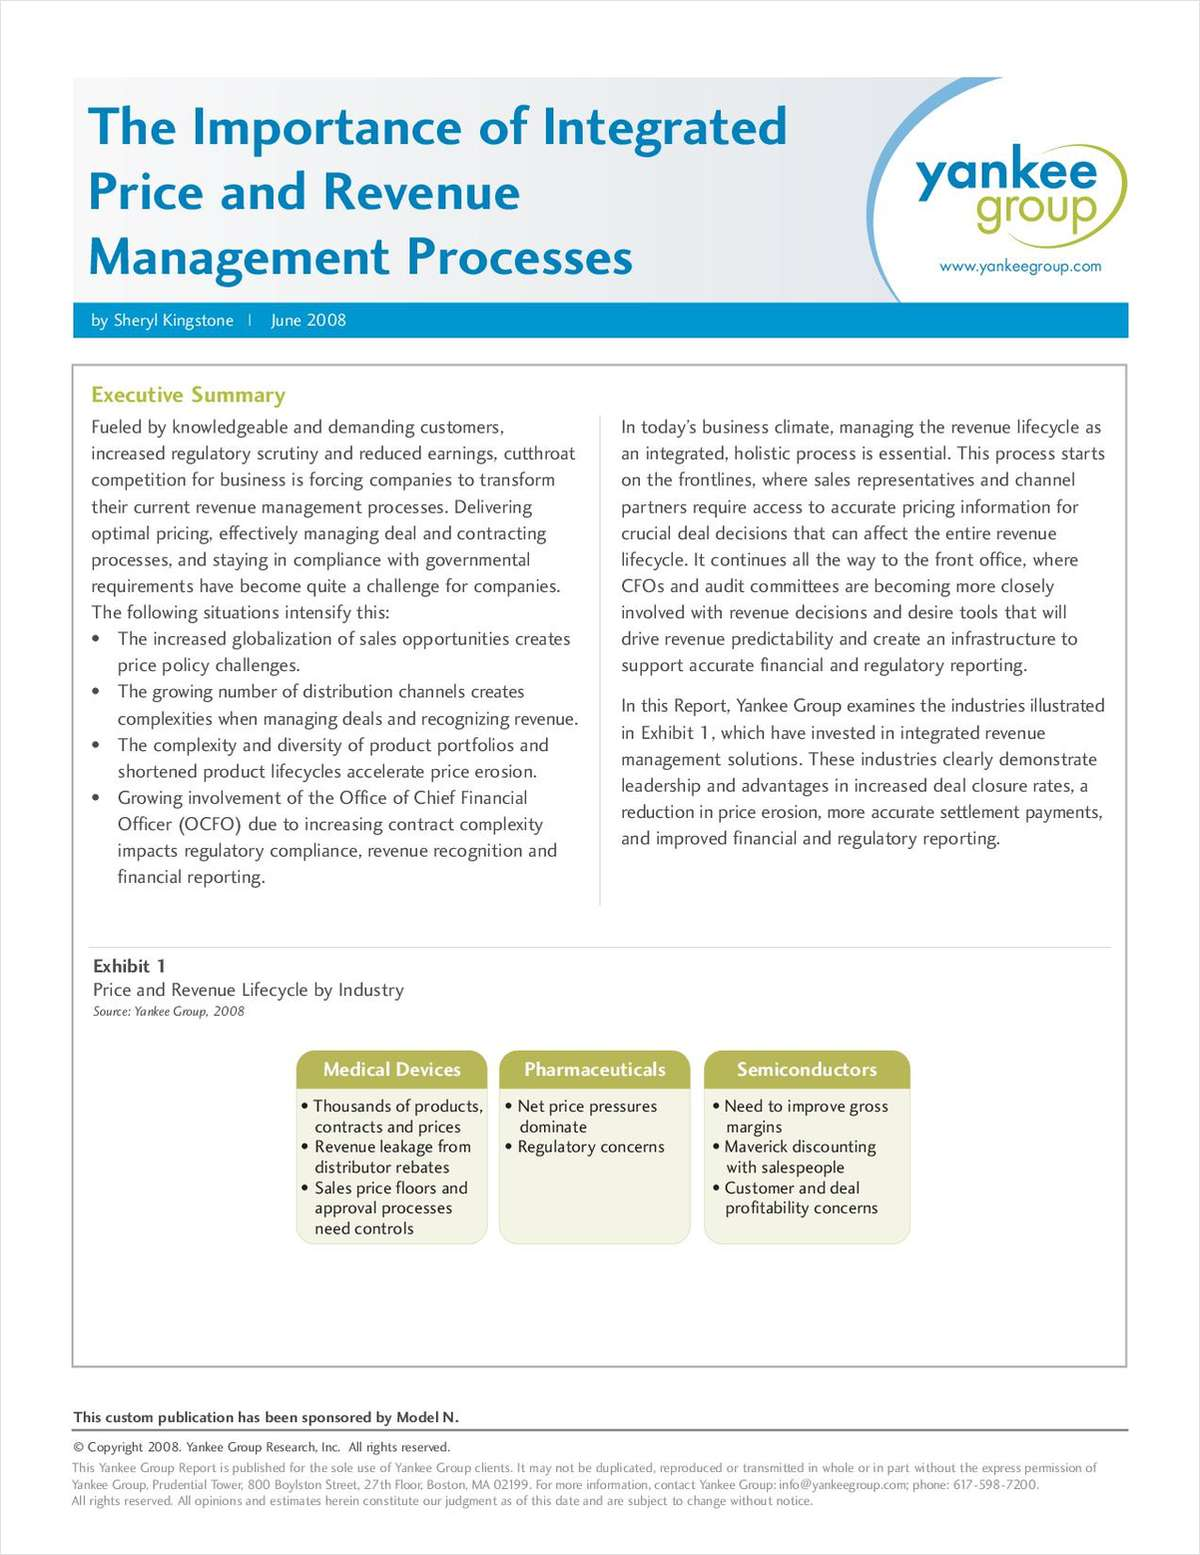 The Importance of Integrated Price and Revenue Management Processes